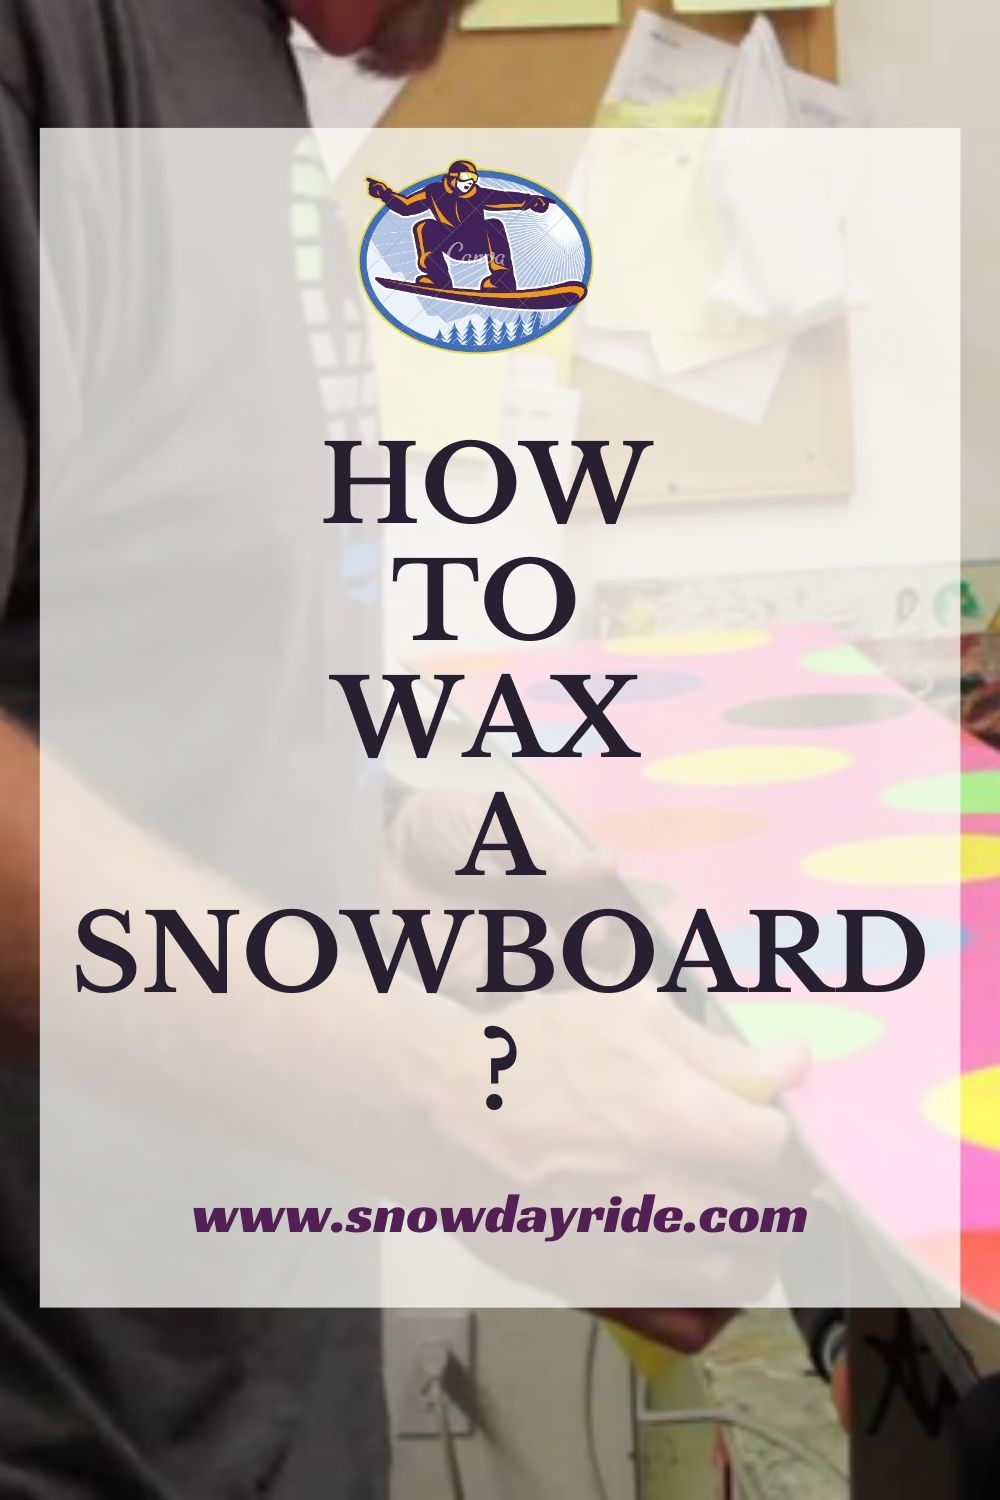 How to Wax a Snowboard? in 2020 Snowboard, Wax, How to get